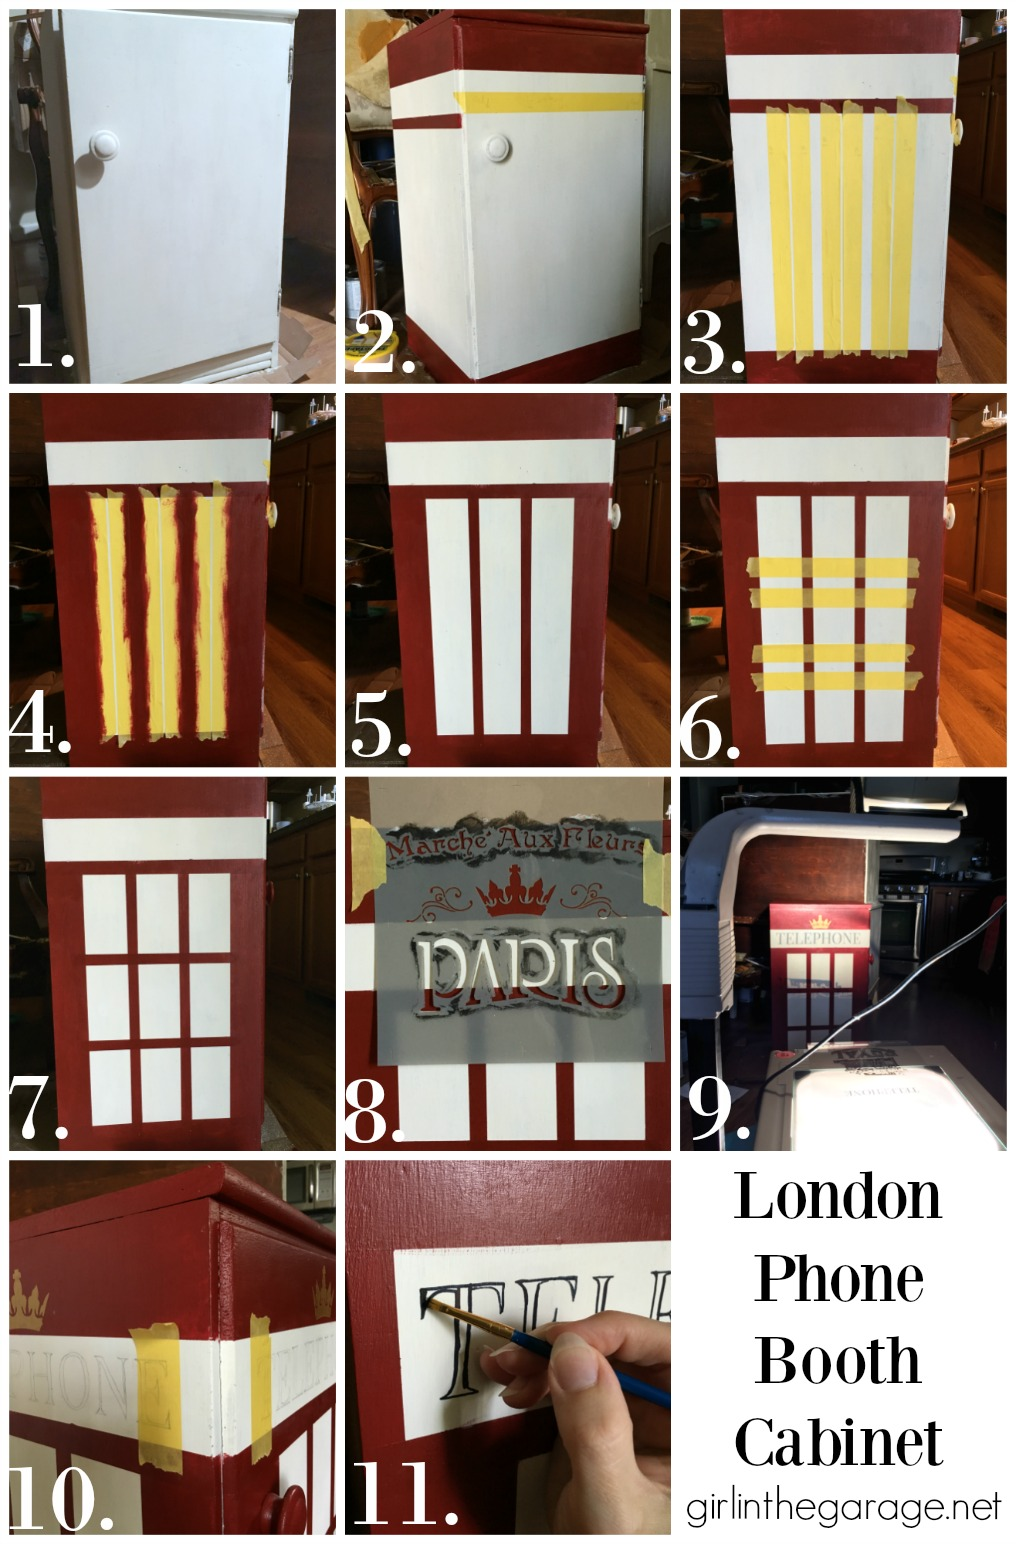 How To Paint A London Phone Booth On Furniture   Girl In The Garage